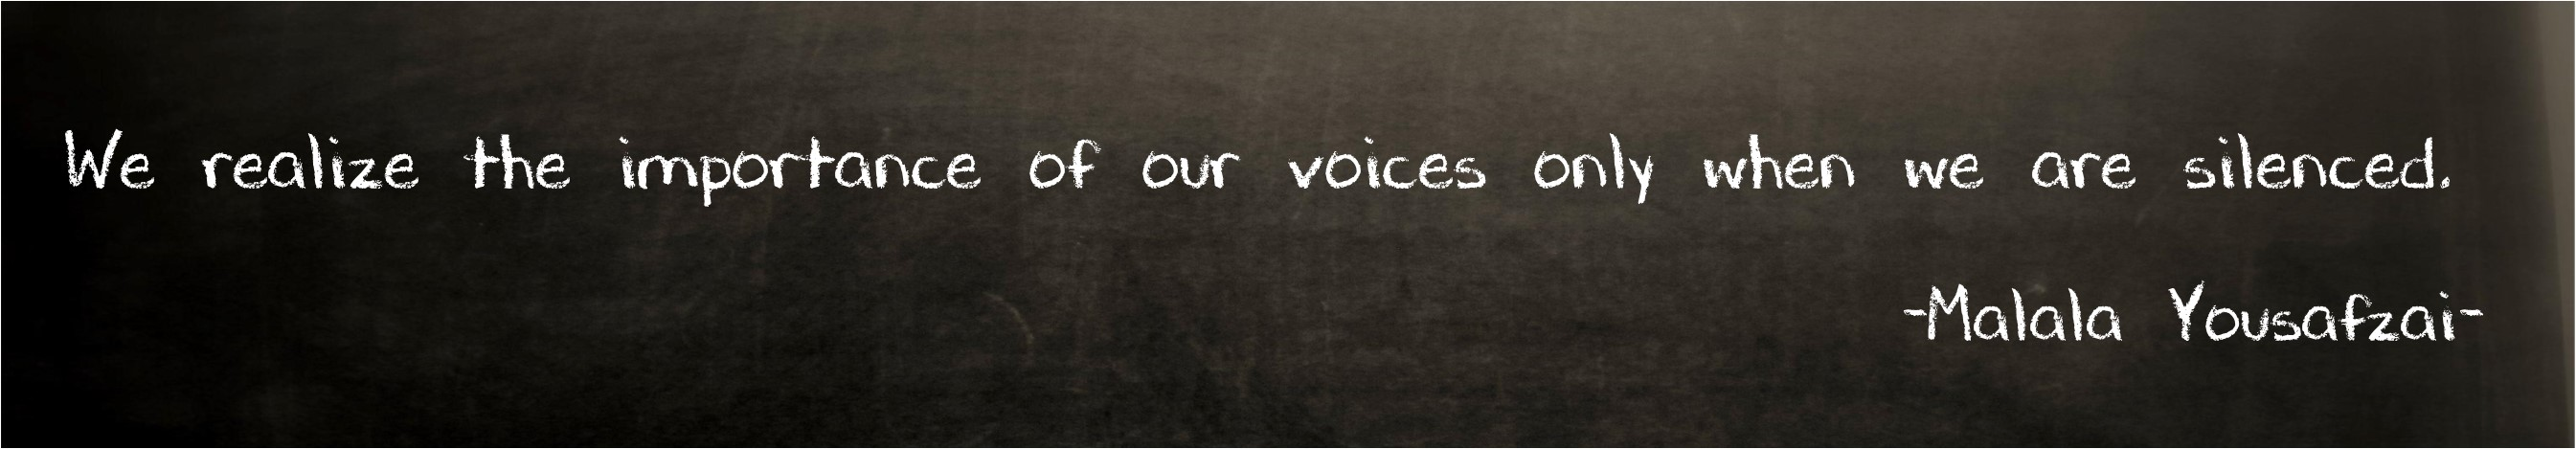 We realize the importance of our voices only when we are silenced. ~Malala Yousafzai